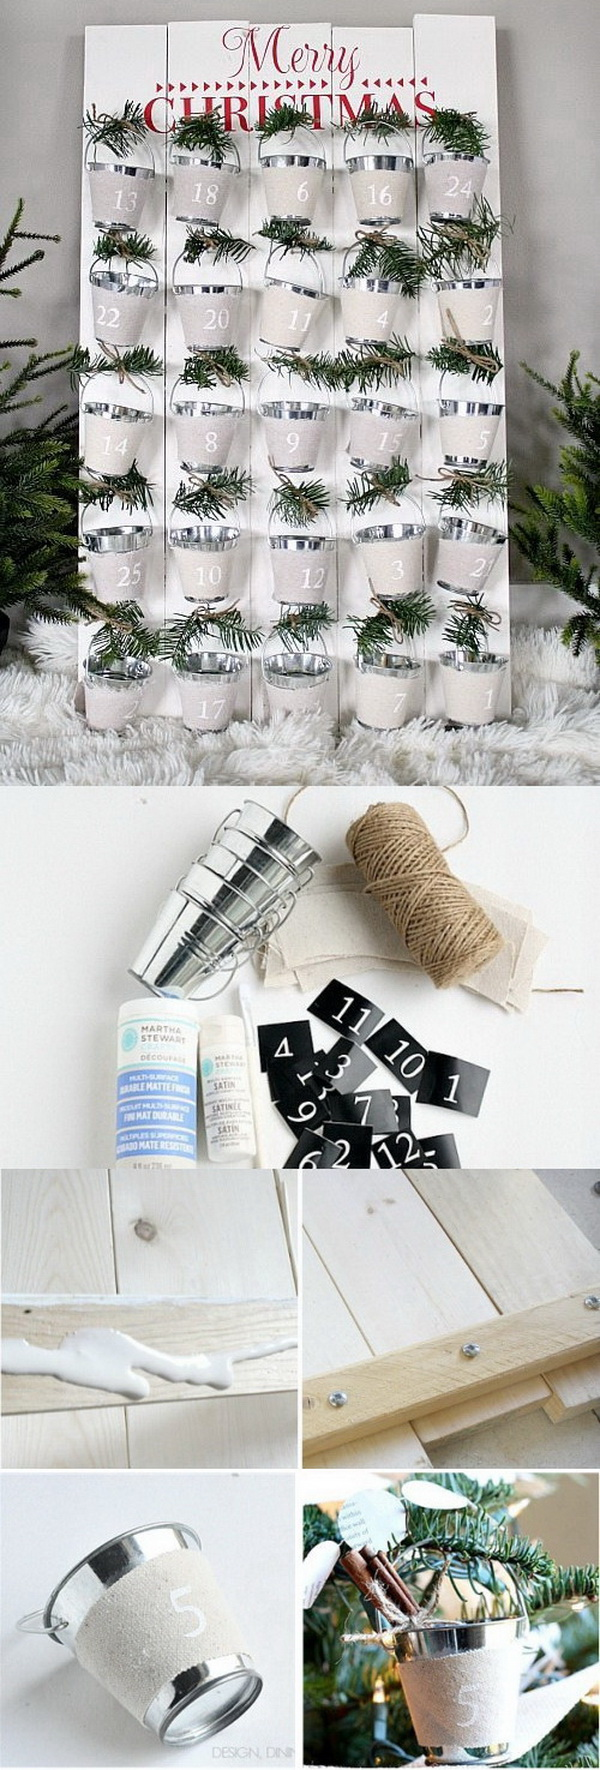 DIY Advent Calendar With Bucket Pails.